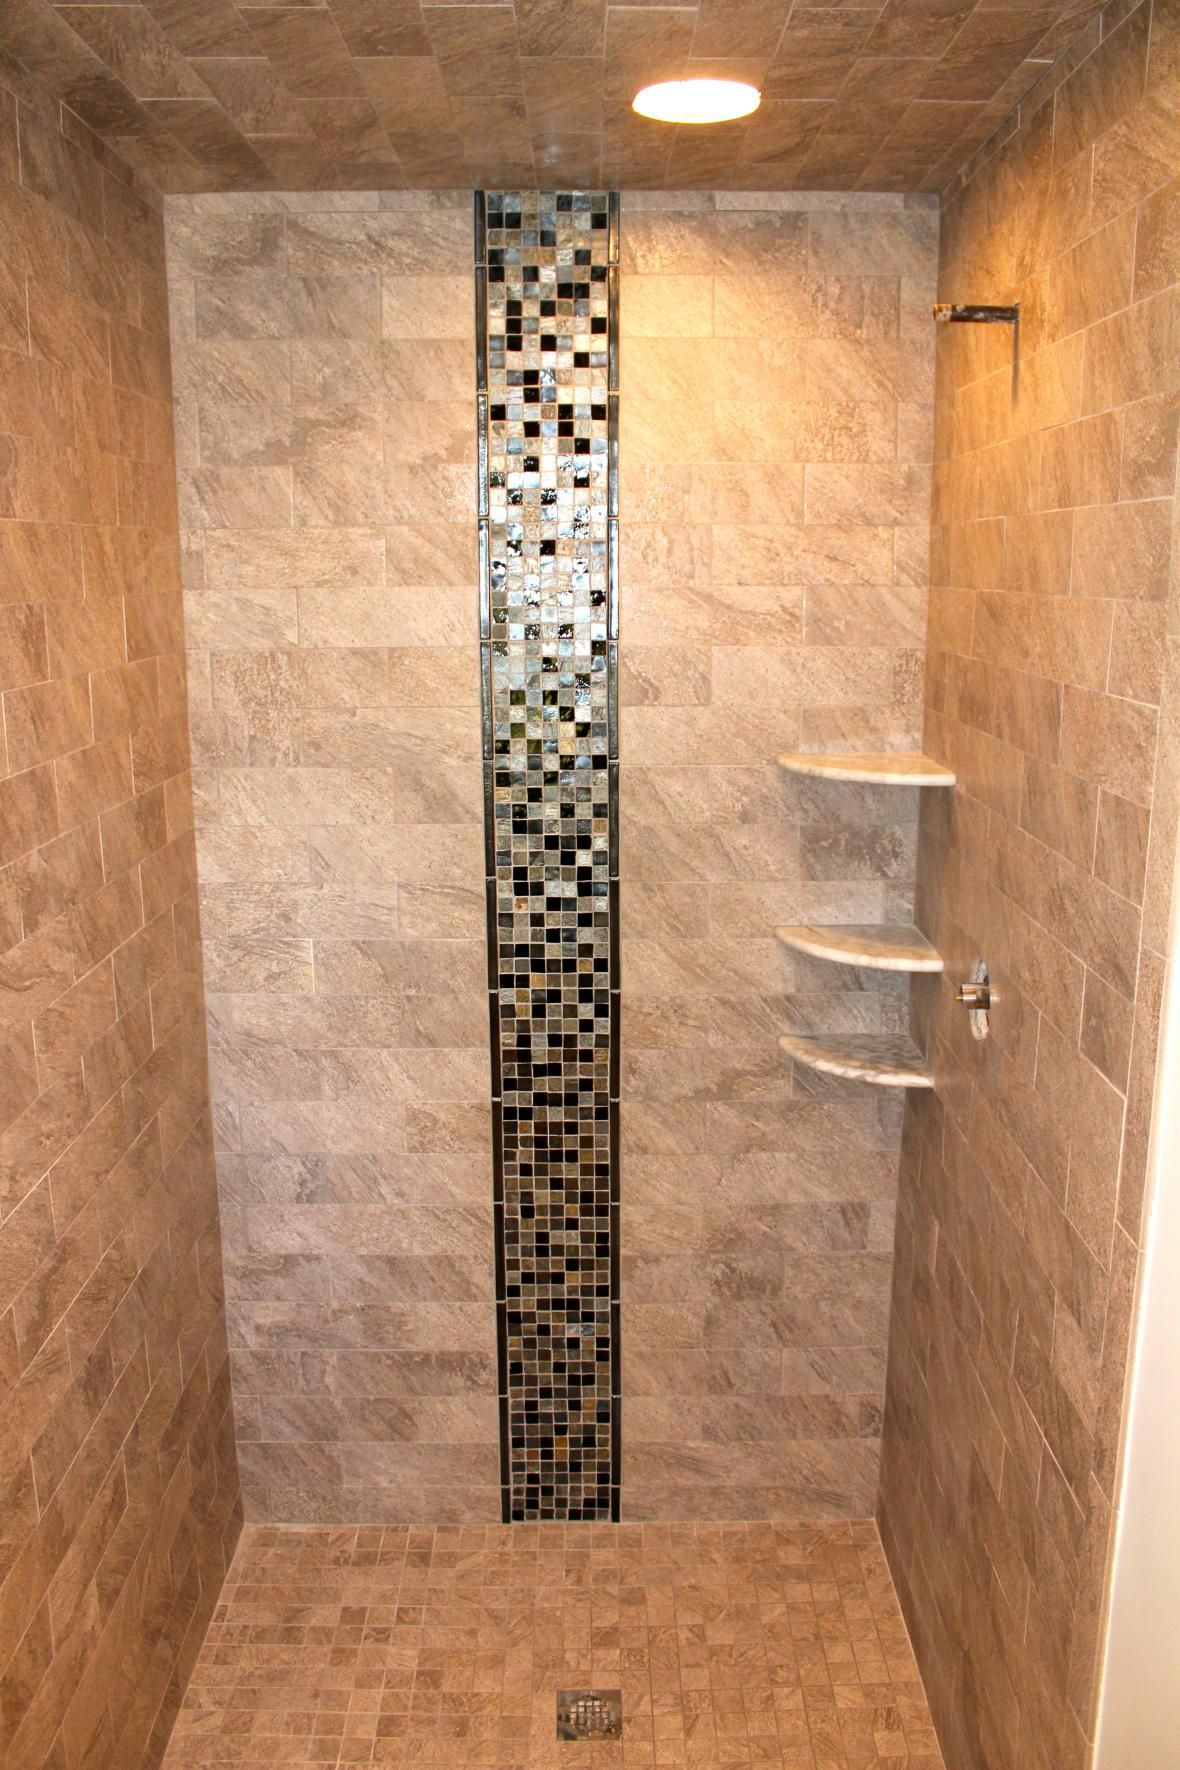 Bathroom ideas shower enclosure tile accent tile and shelves projects to try pinterest - Decorative bathroom tiles ...